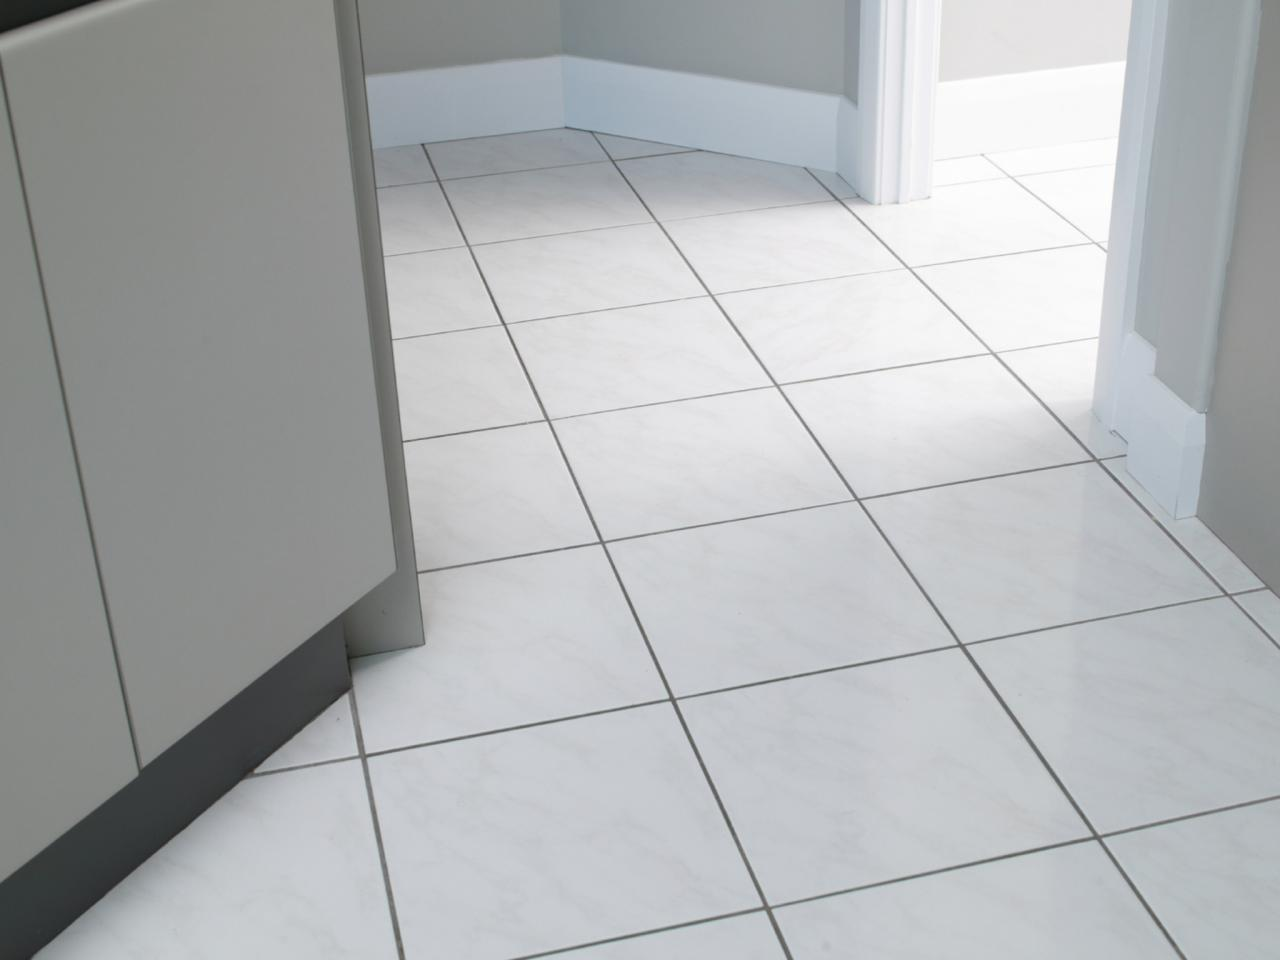 Clean Bathroom Floor Tiles Tile Tile Flooring Breathtaking Cleaning